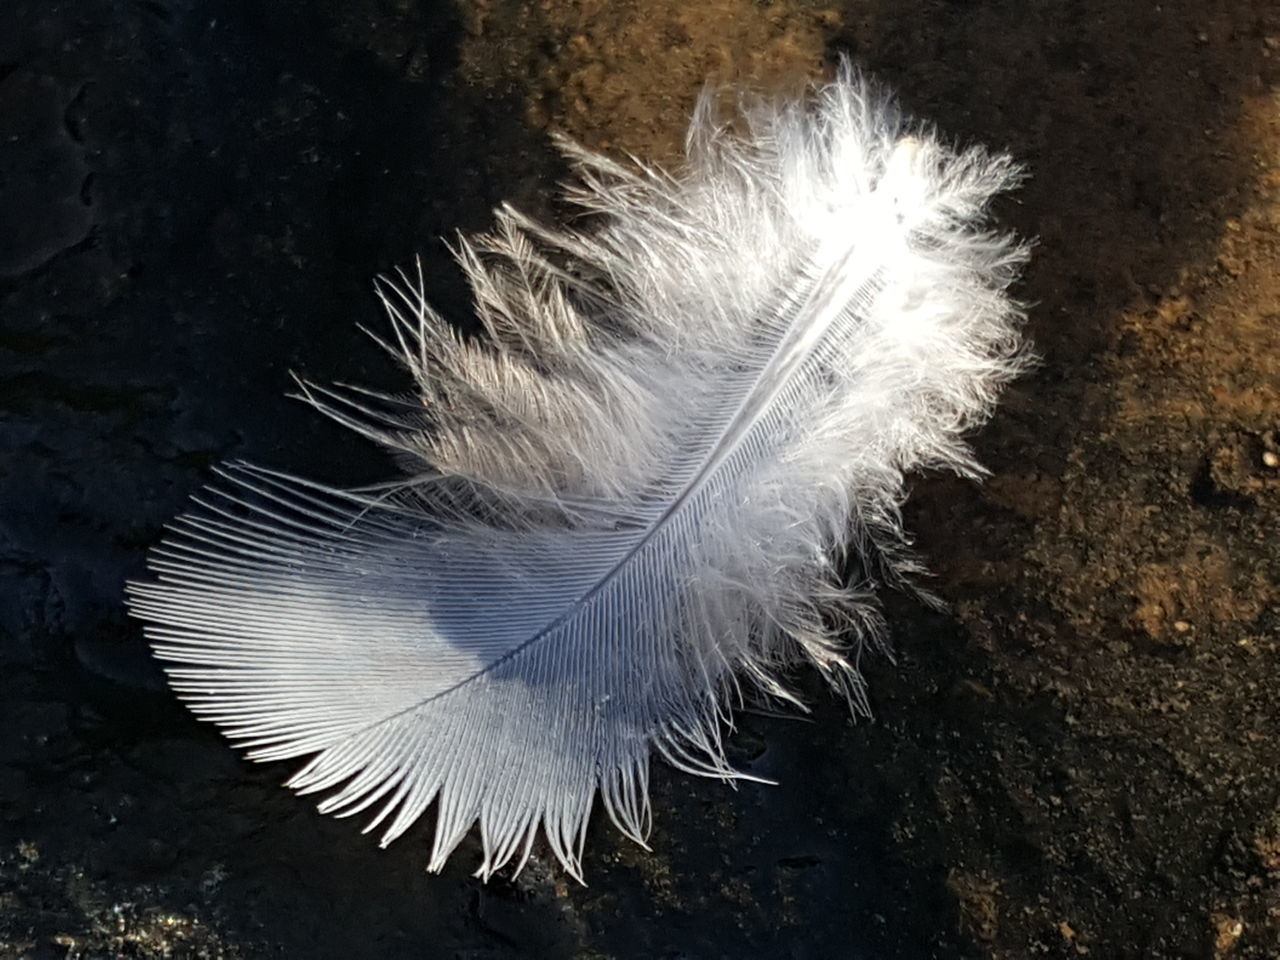 feather, peacock, peacock feather, softness, white color, one animal, fragility, close-up, animal themes, bird, no people, lightweight, nature, day, fanned out, beauty in nature, animals in the wild, outdoors